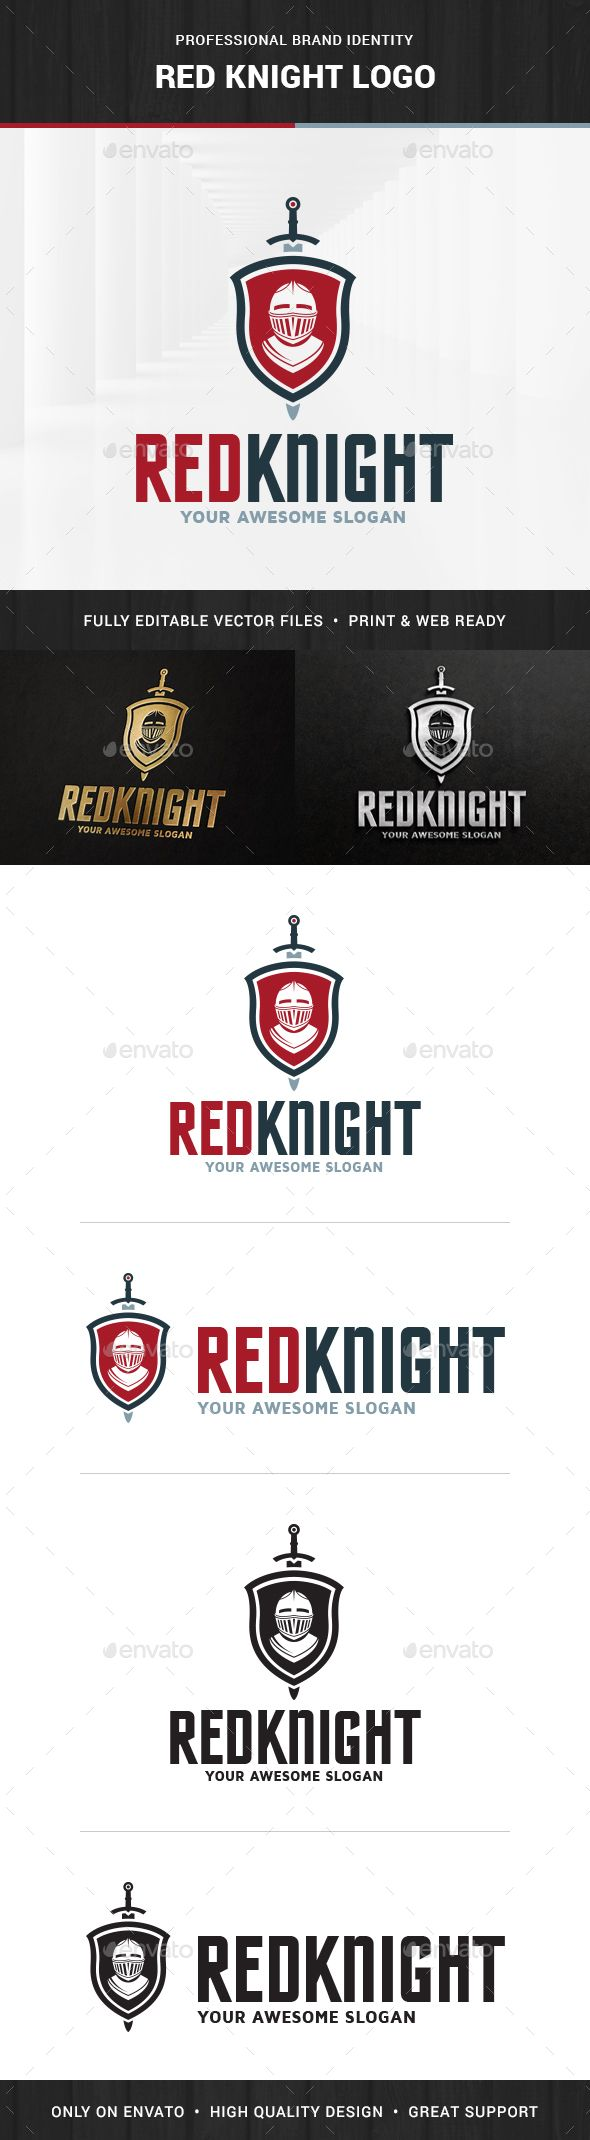 Red Knight Logo Template - Logo Templates